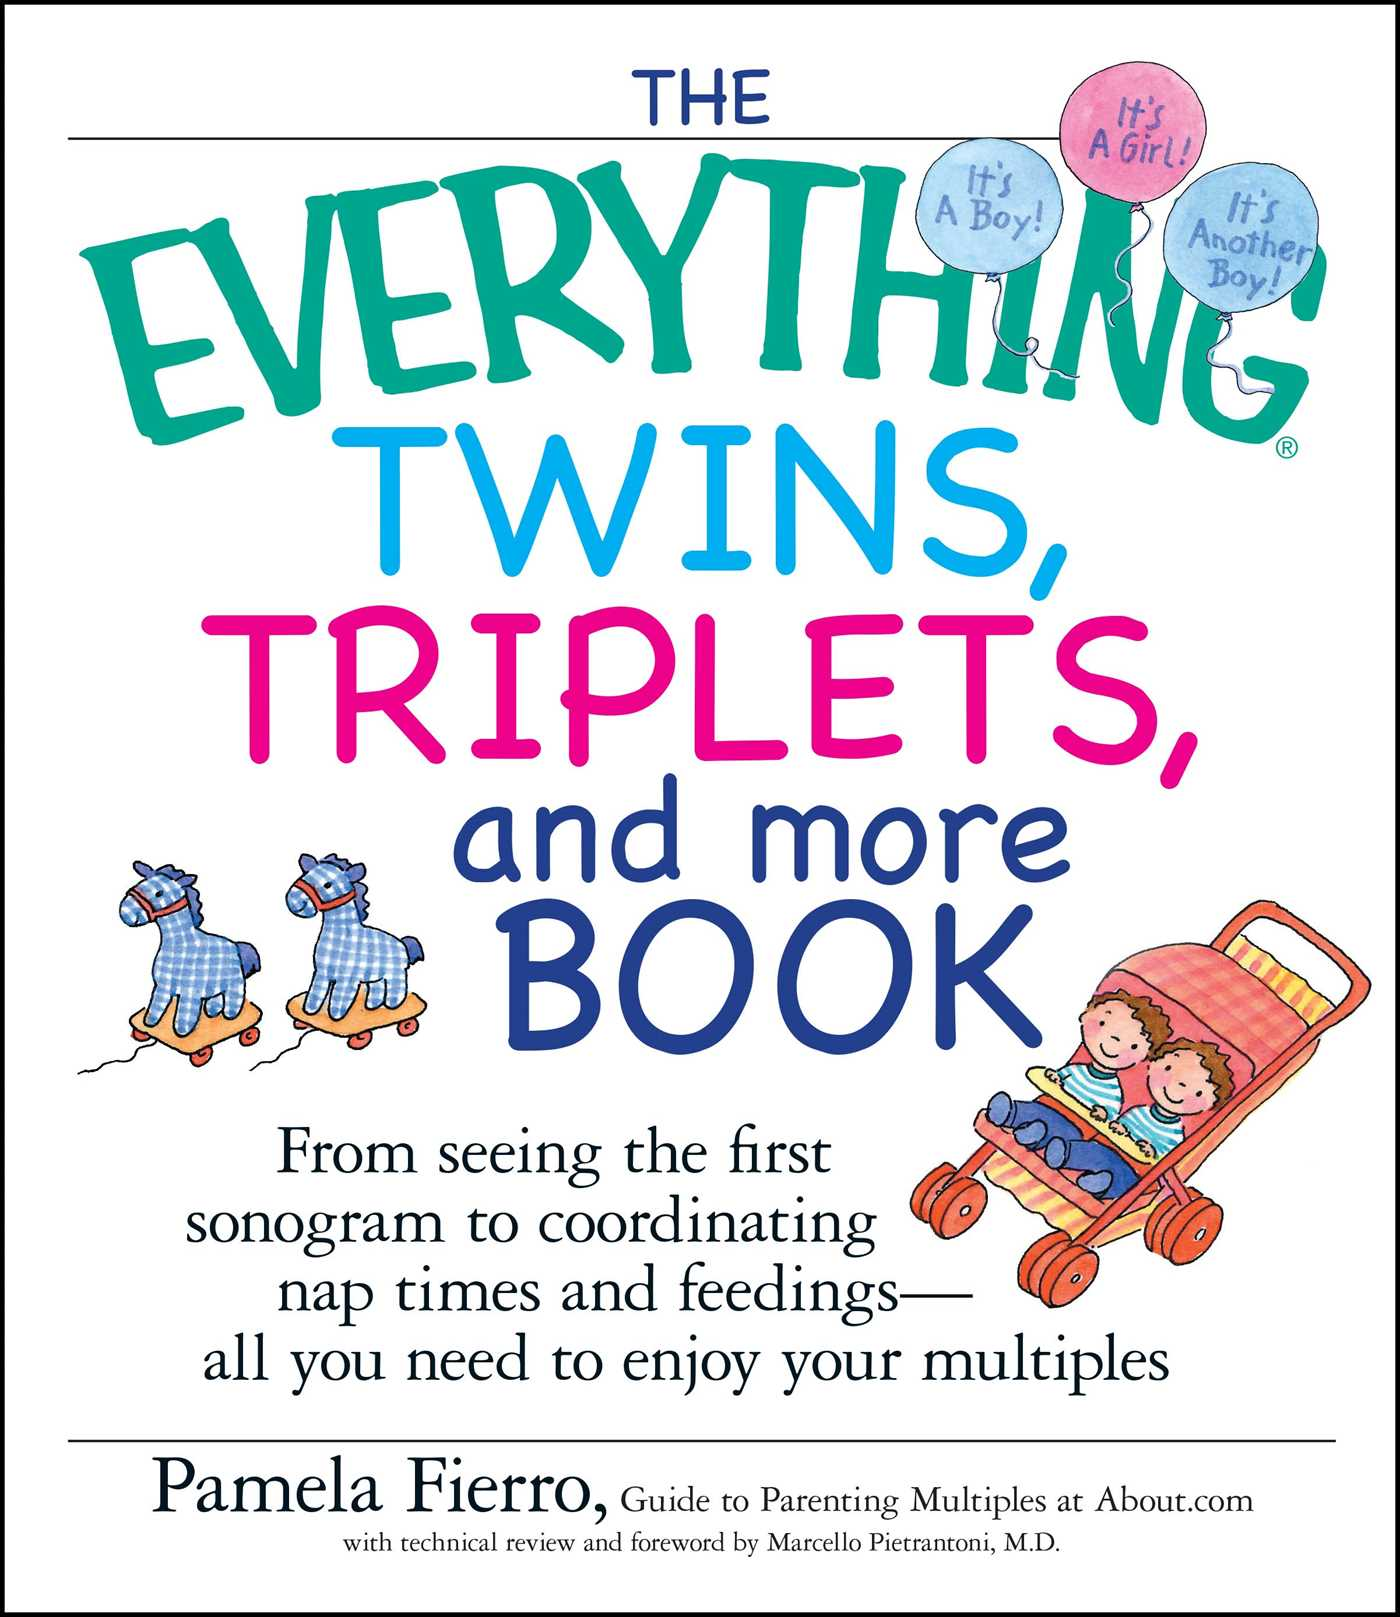 multiple births twins triplets and beyond Multiple births: twins, triplets, and beyond abstract the high number of multiple pregnancies is a concern because women who are expecting more than one baby are.